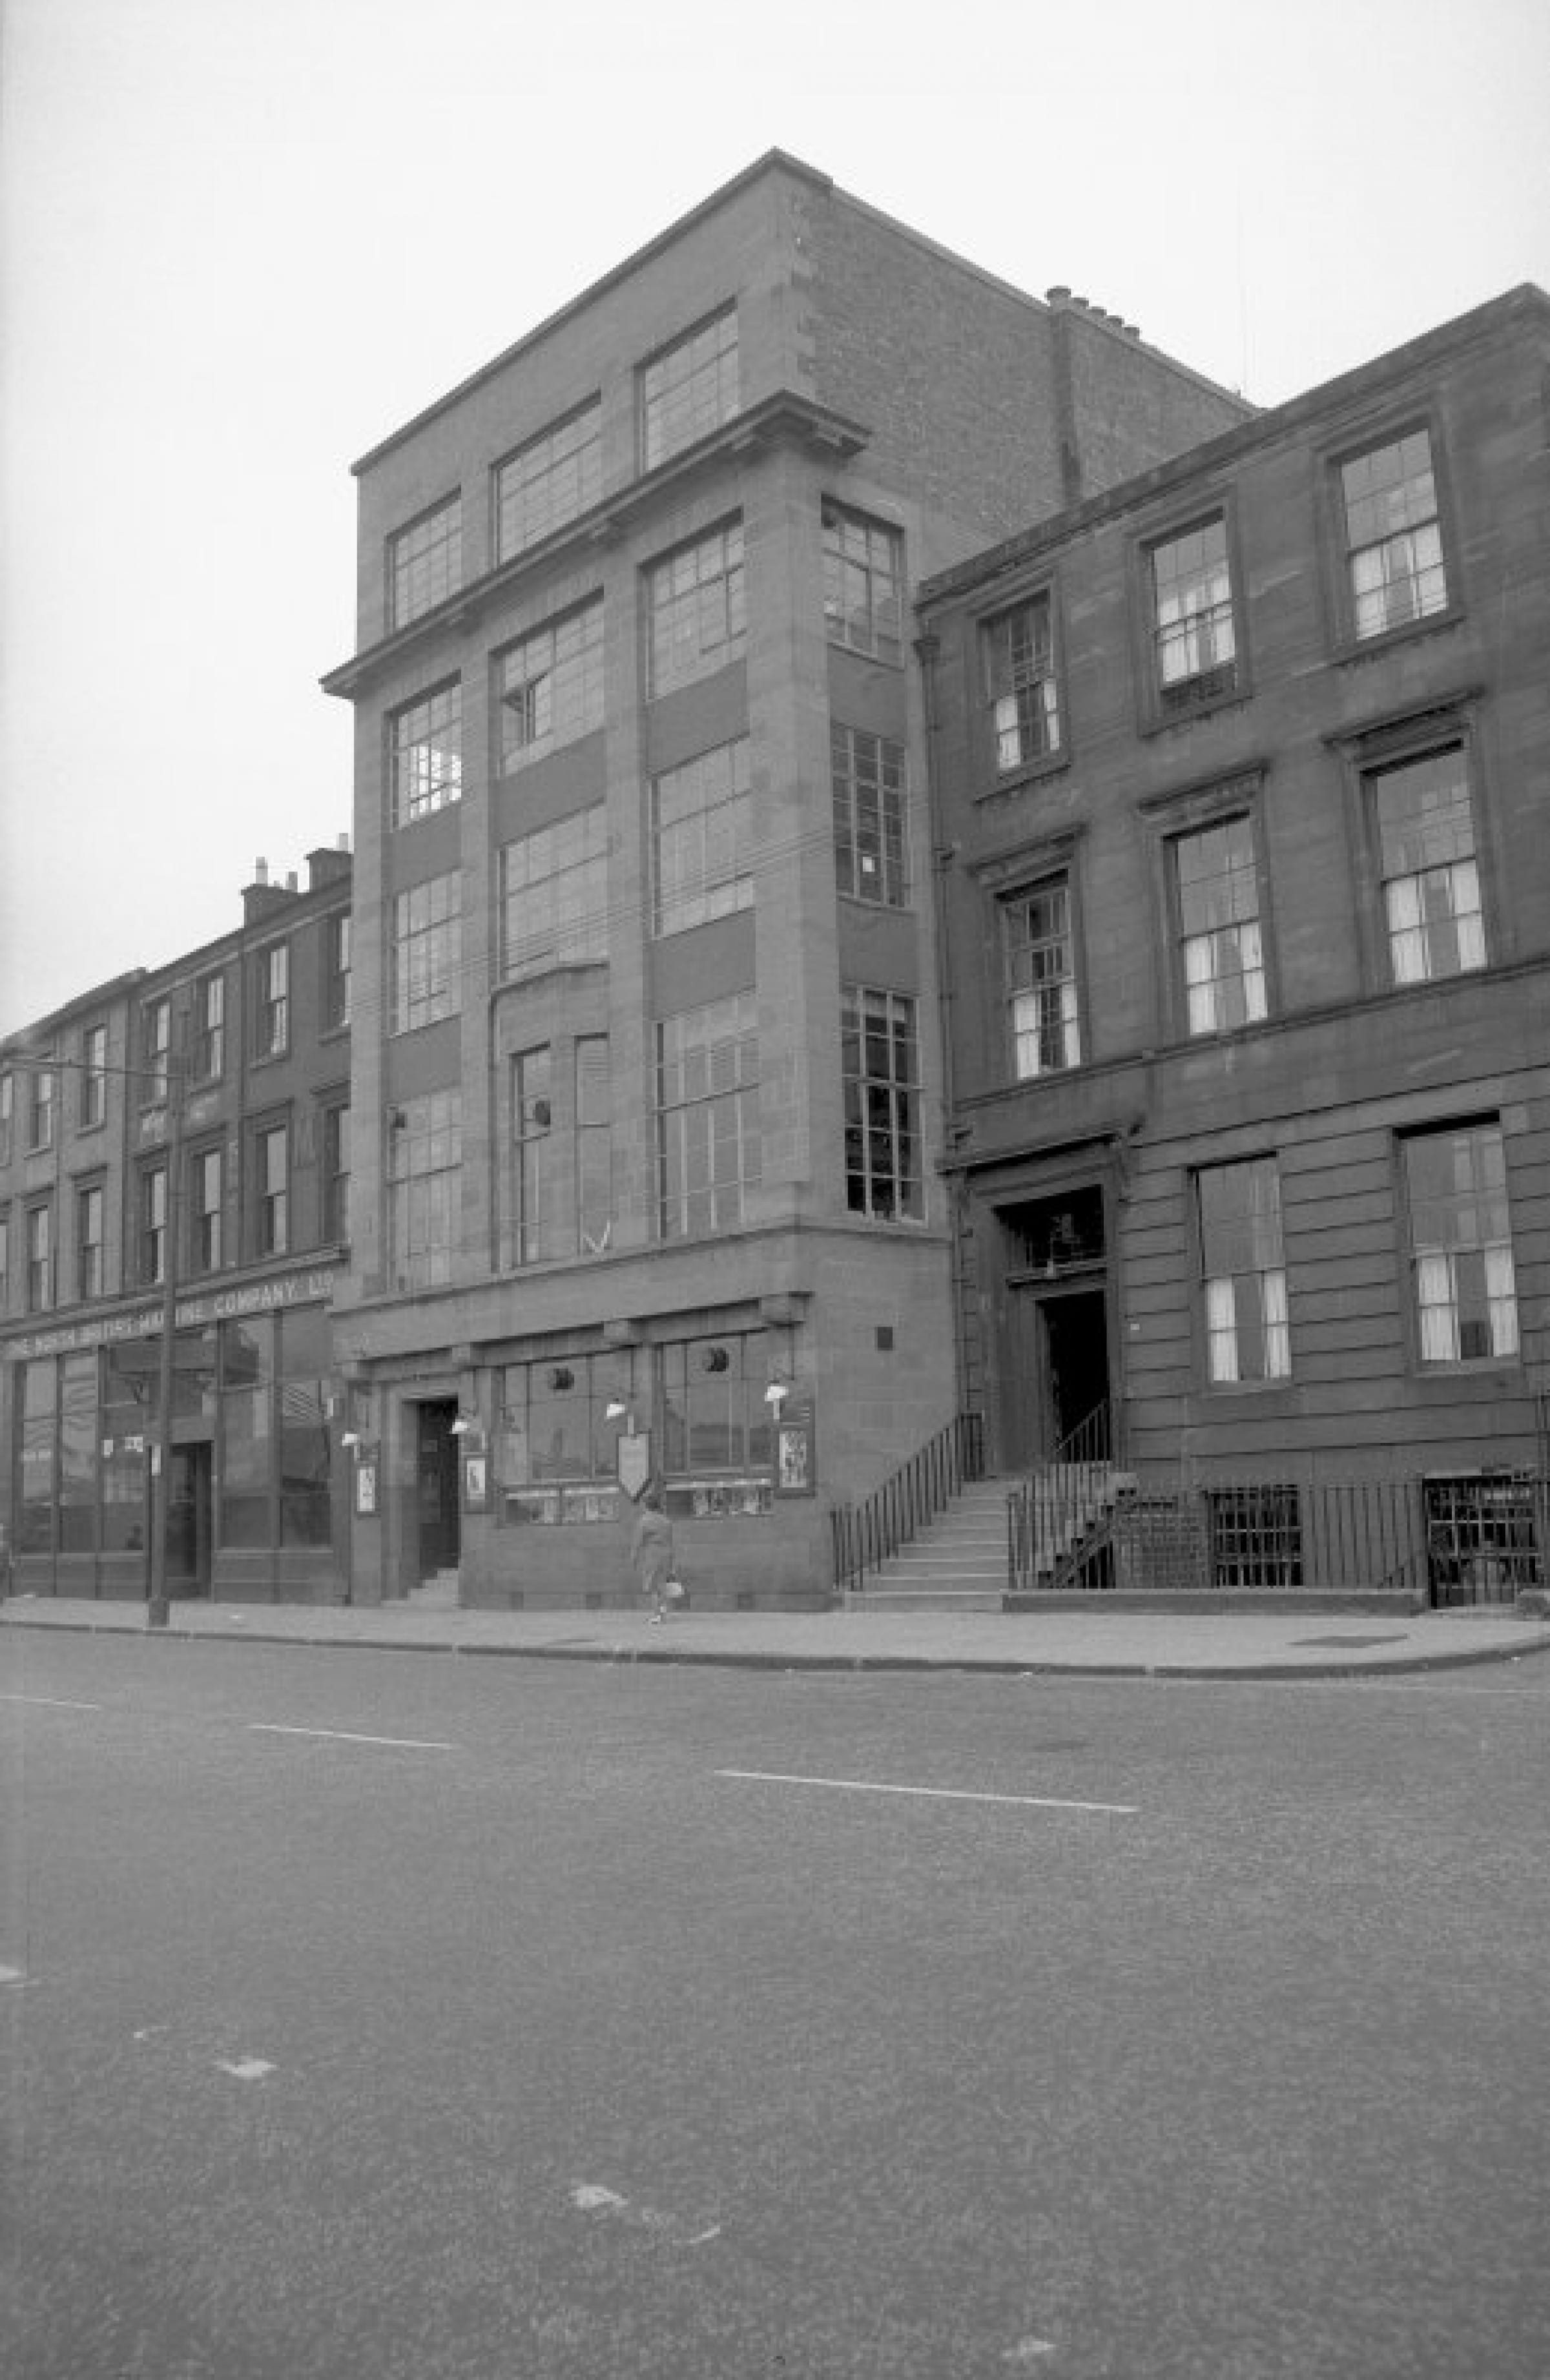 Black and white - and pure gold (Dubrien House, at 196 Clyde Street, home to Scottish Studios and Engravers Ltd. (Picture: John R Hume))